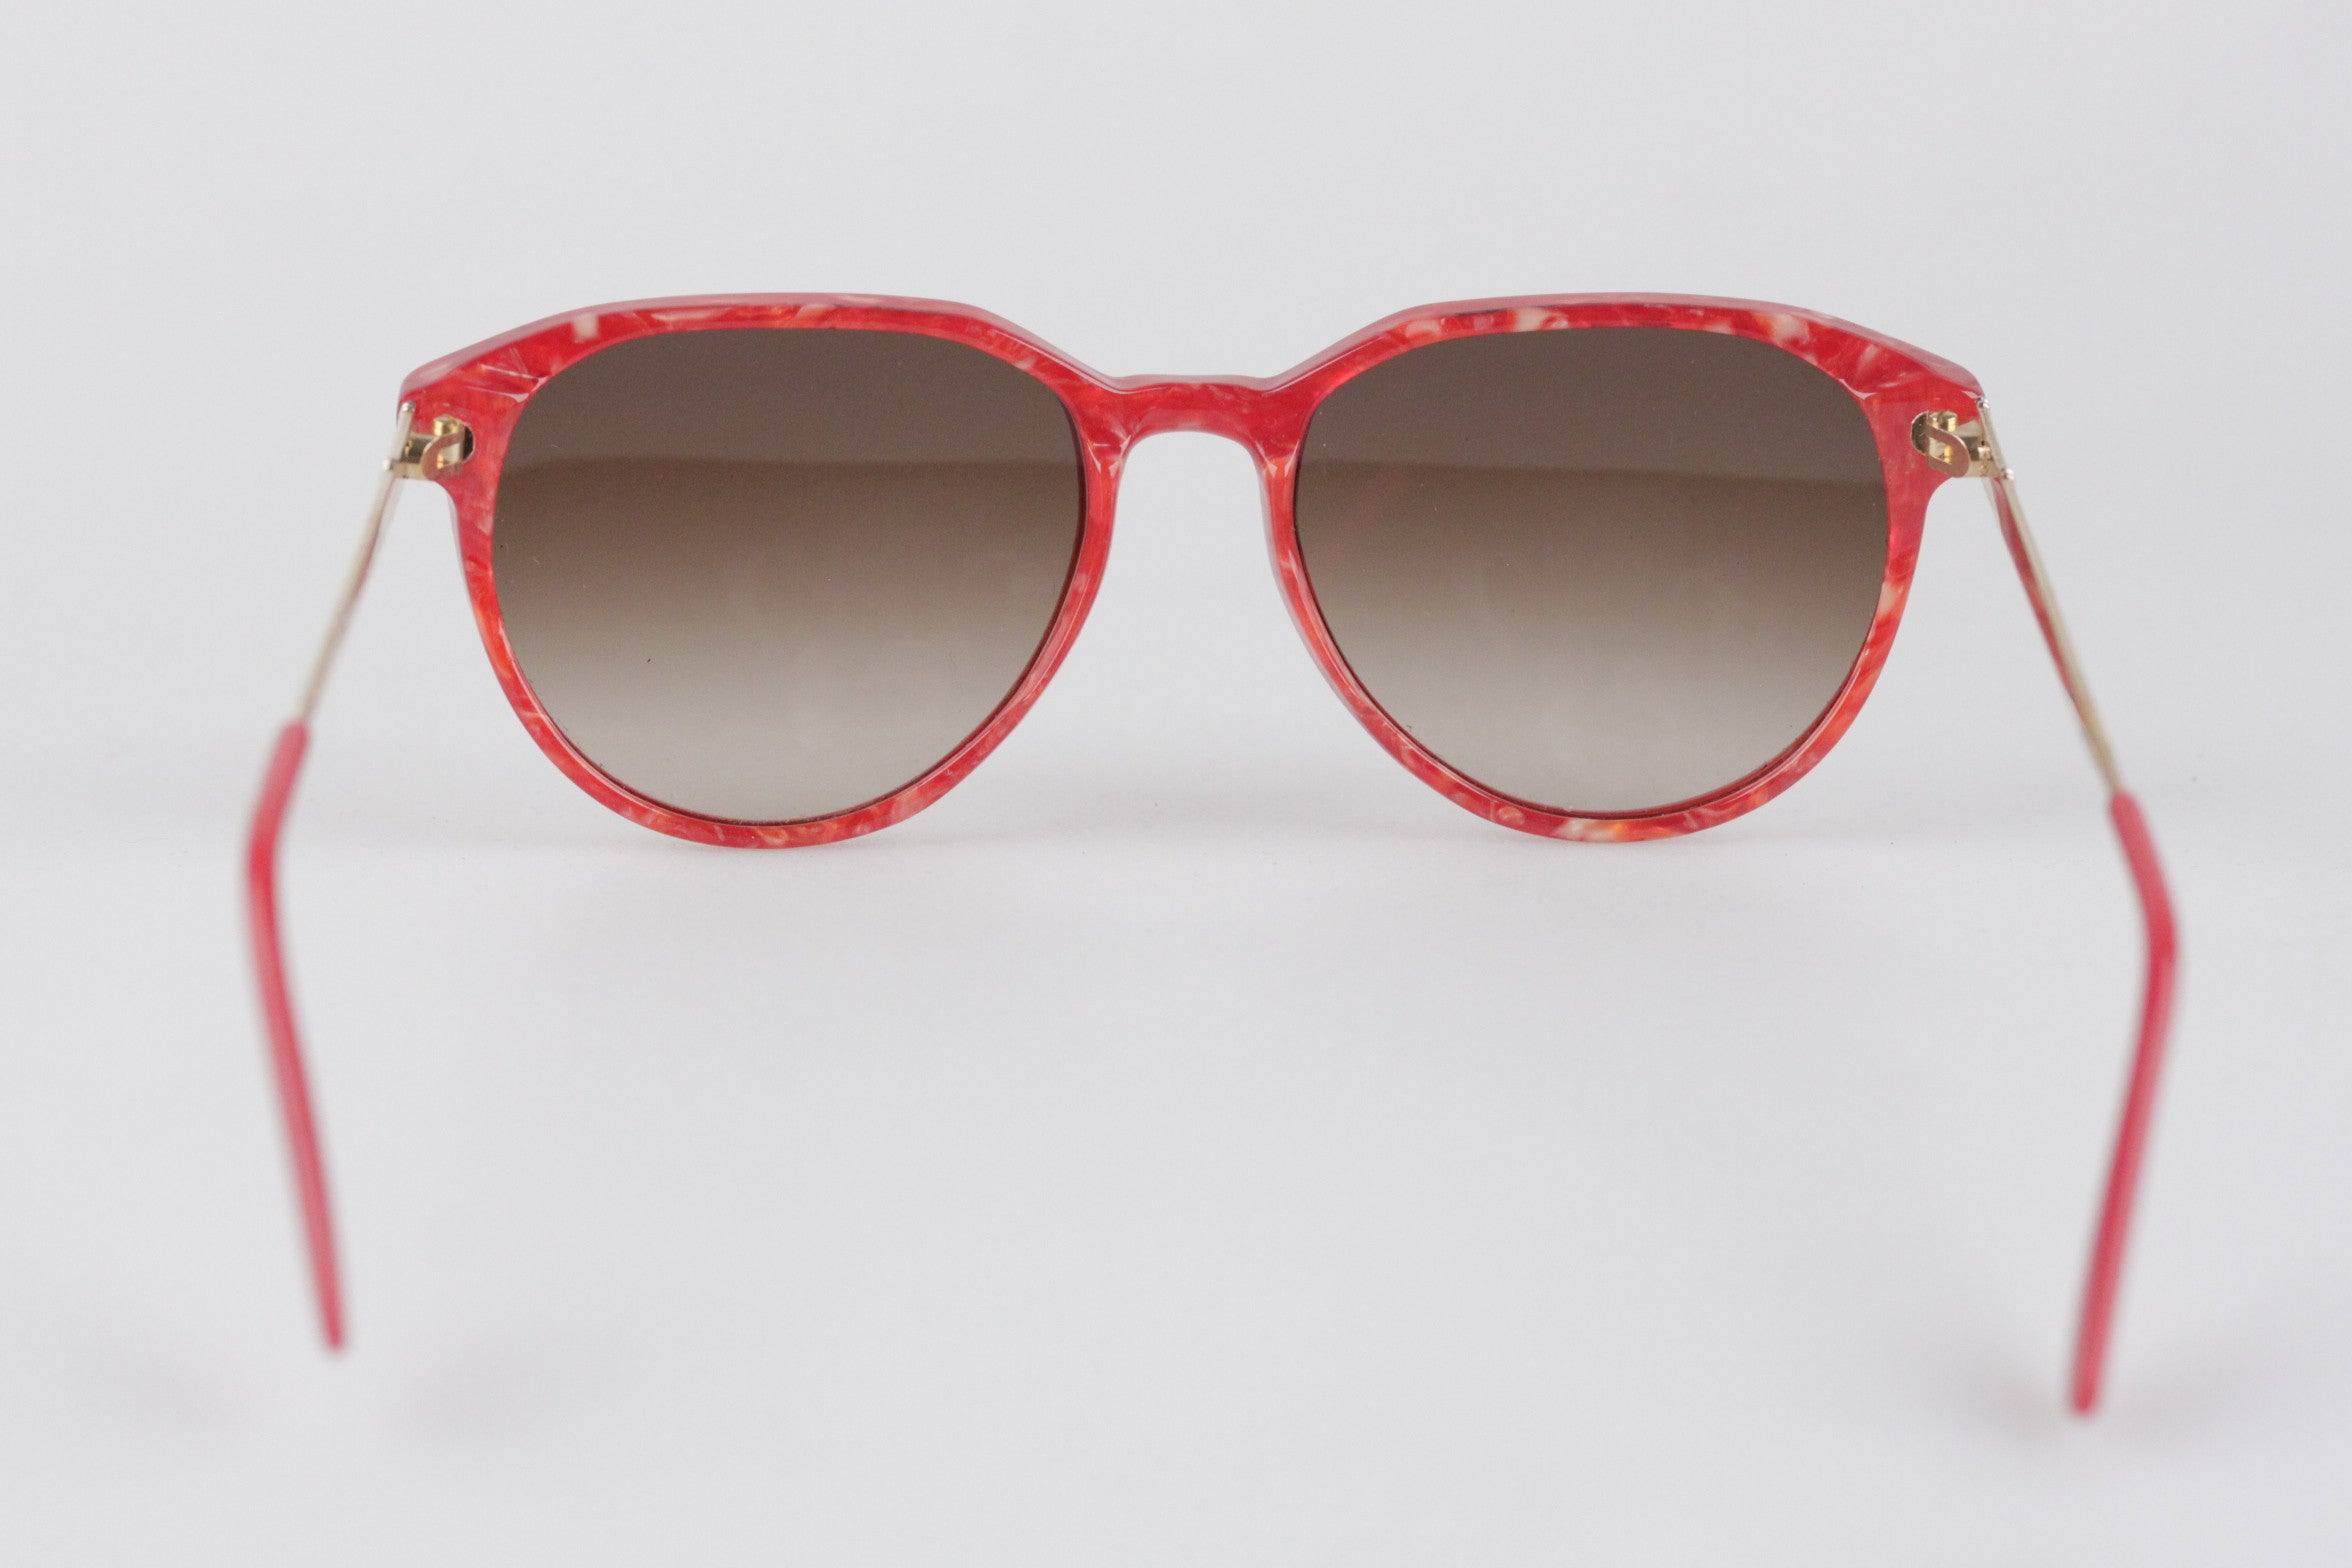 2bac7c3f994 Yves Saint Laurent Vintage Red Sunglasses Mod Persephone New Old Stock For  Sale at 1stdibs